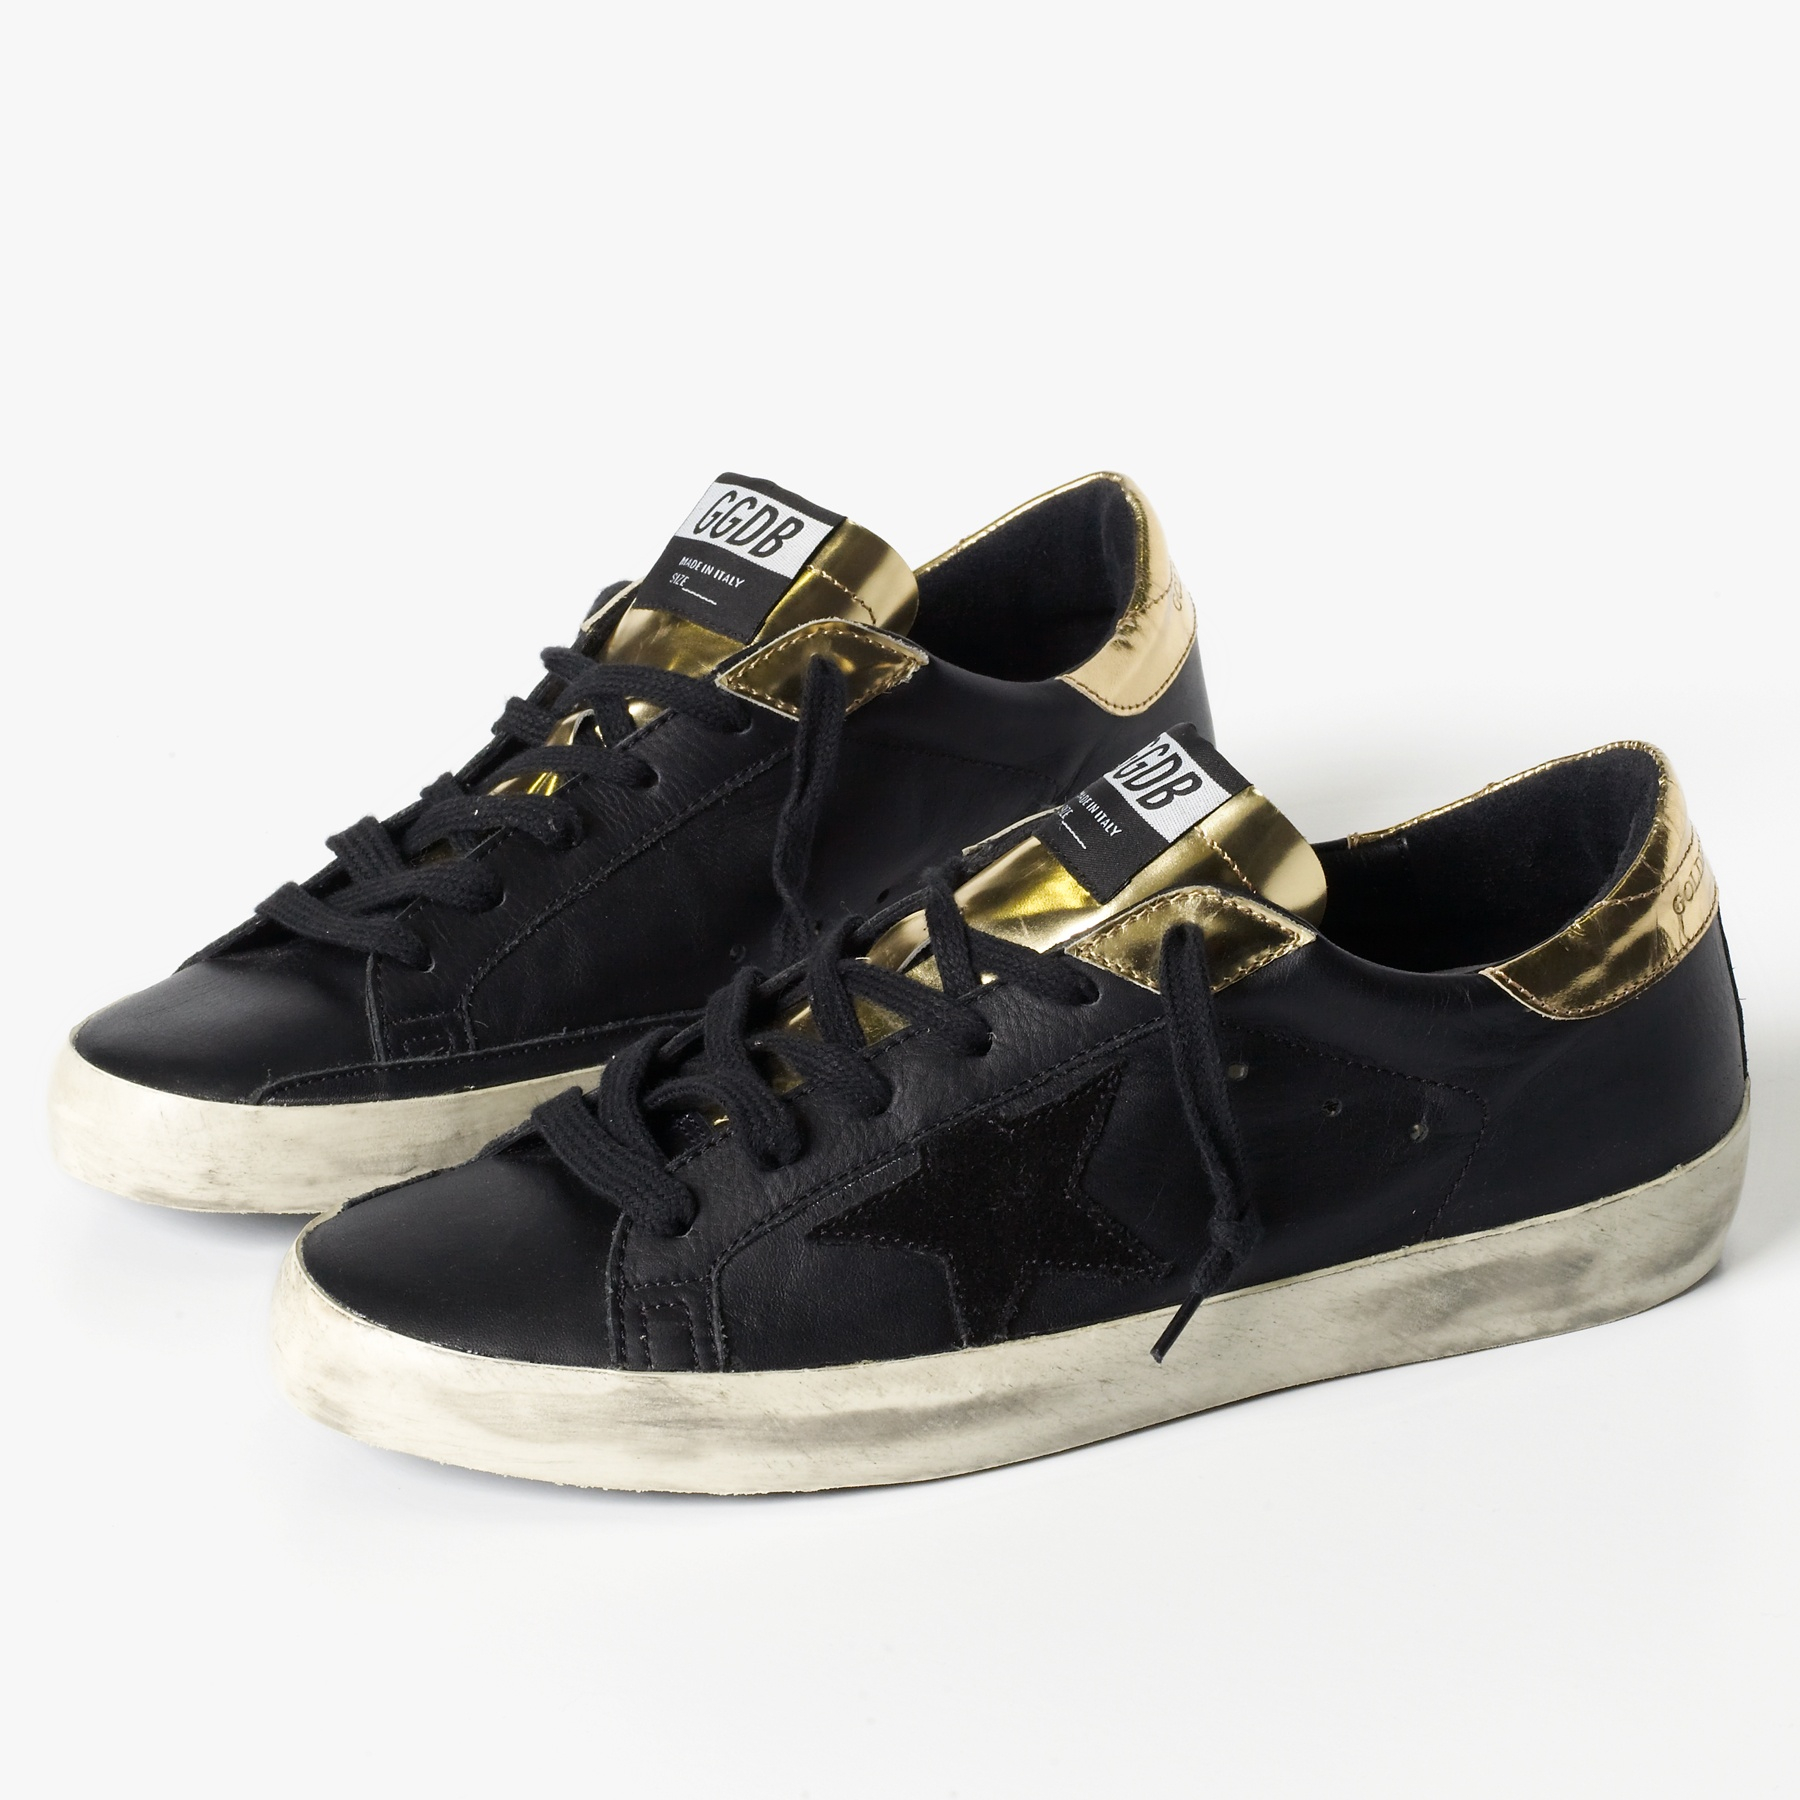 lyst james perse golden goose superstar sneaker mens in black for men. Black Bedroom Furniture Sets. Home Design Ideas